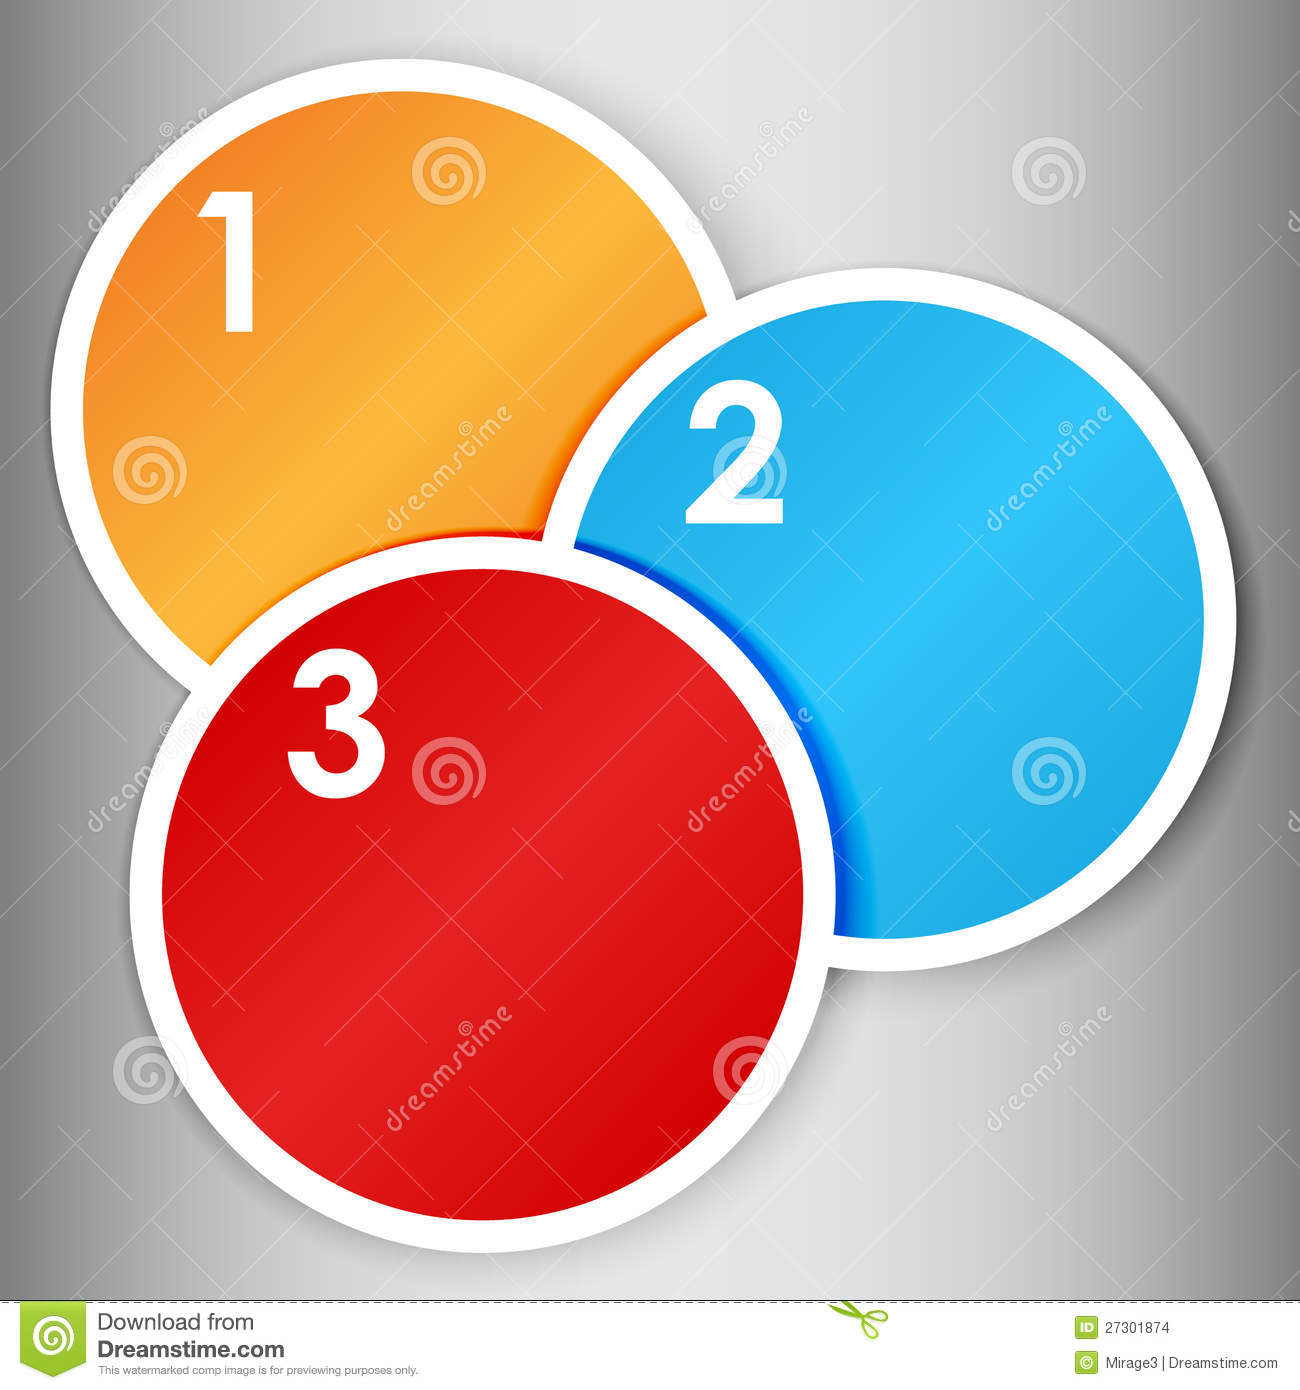 Set 1 of colorful round label or stickers in bright colors with 123 numbers in white over light grey gradient background ready for your text